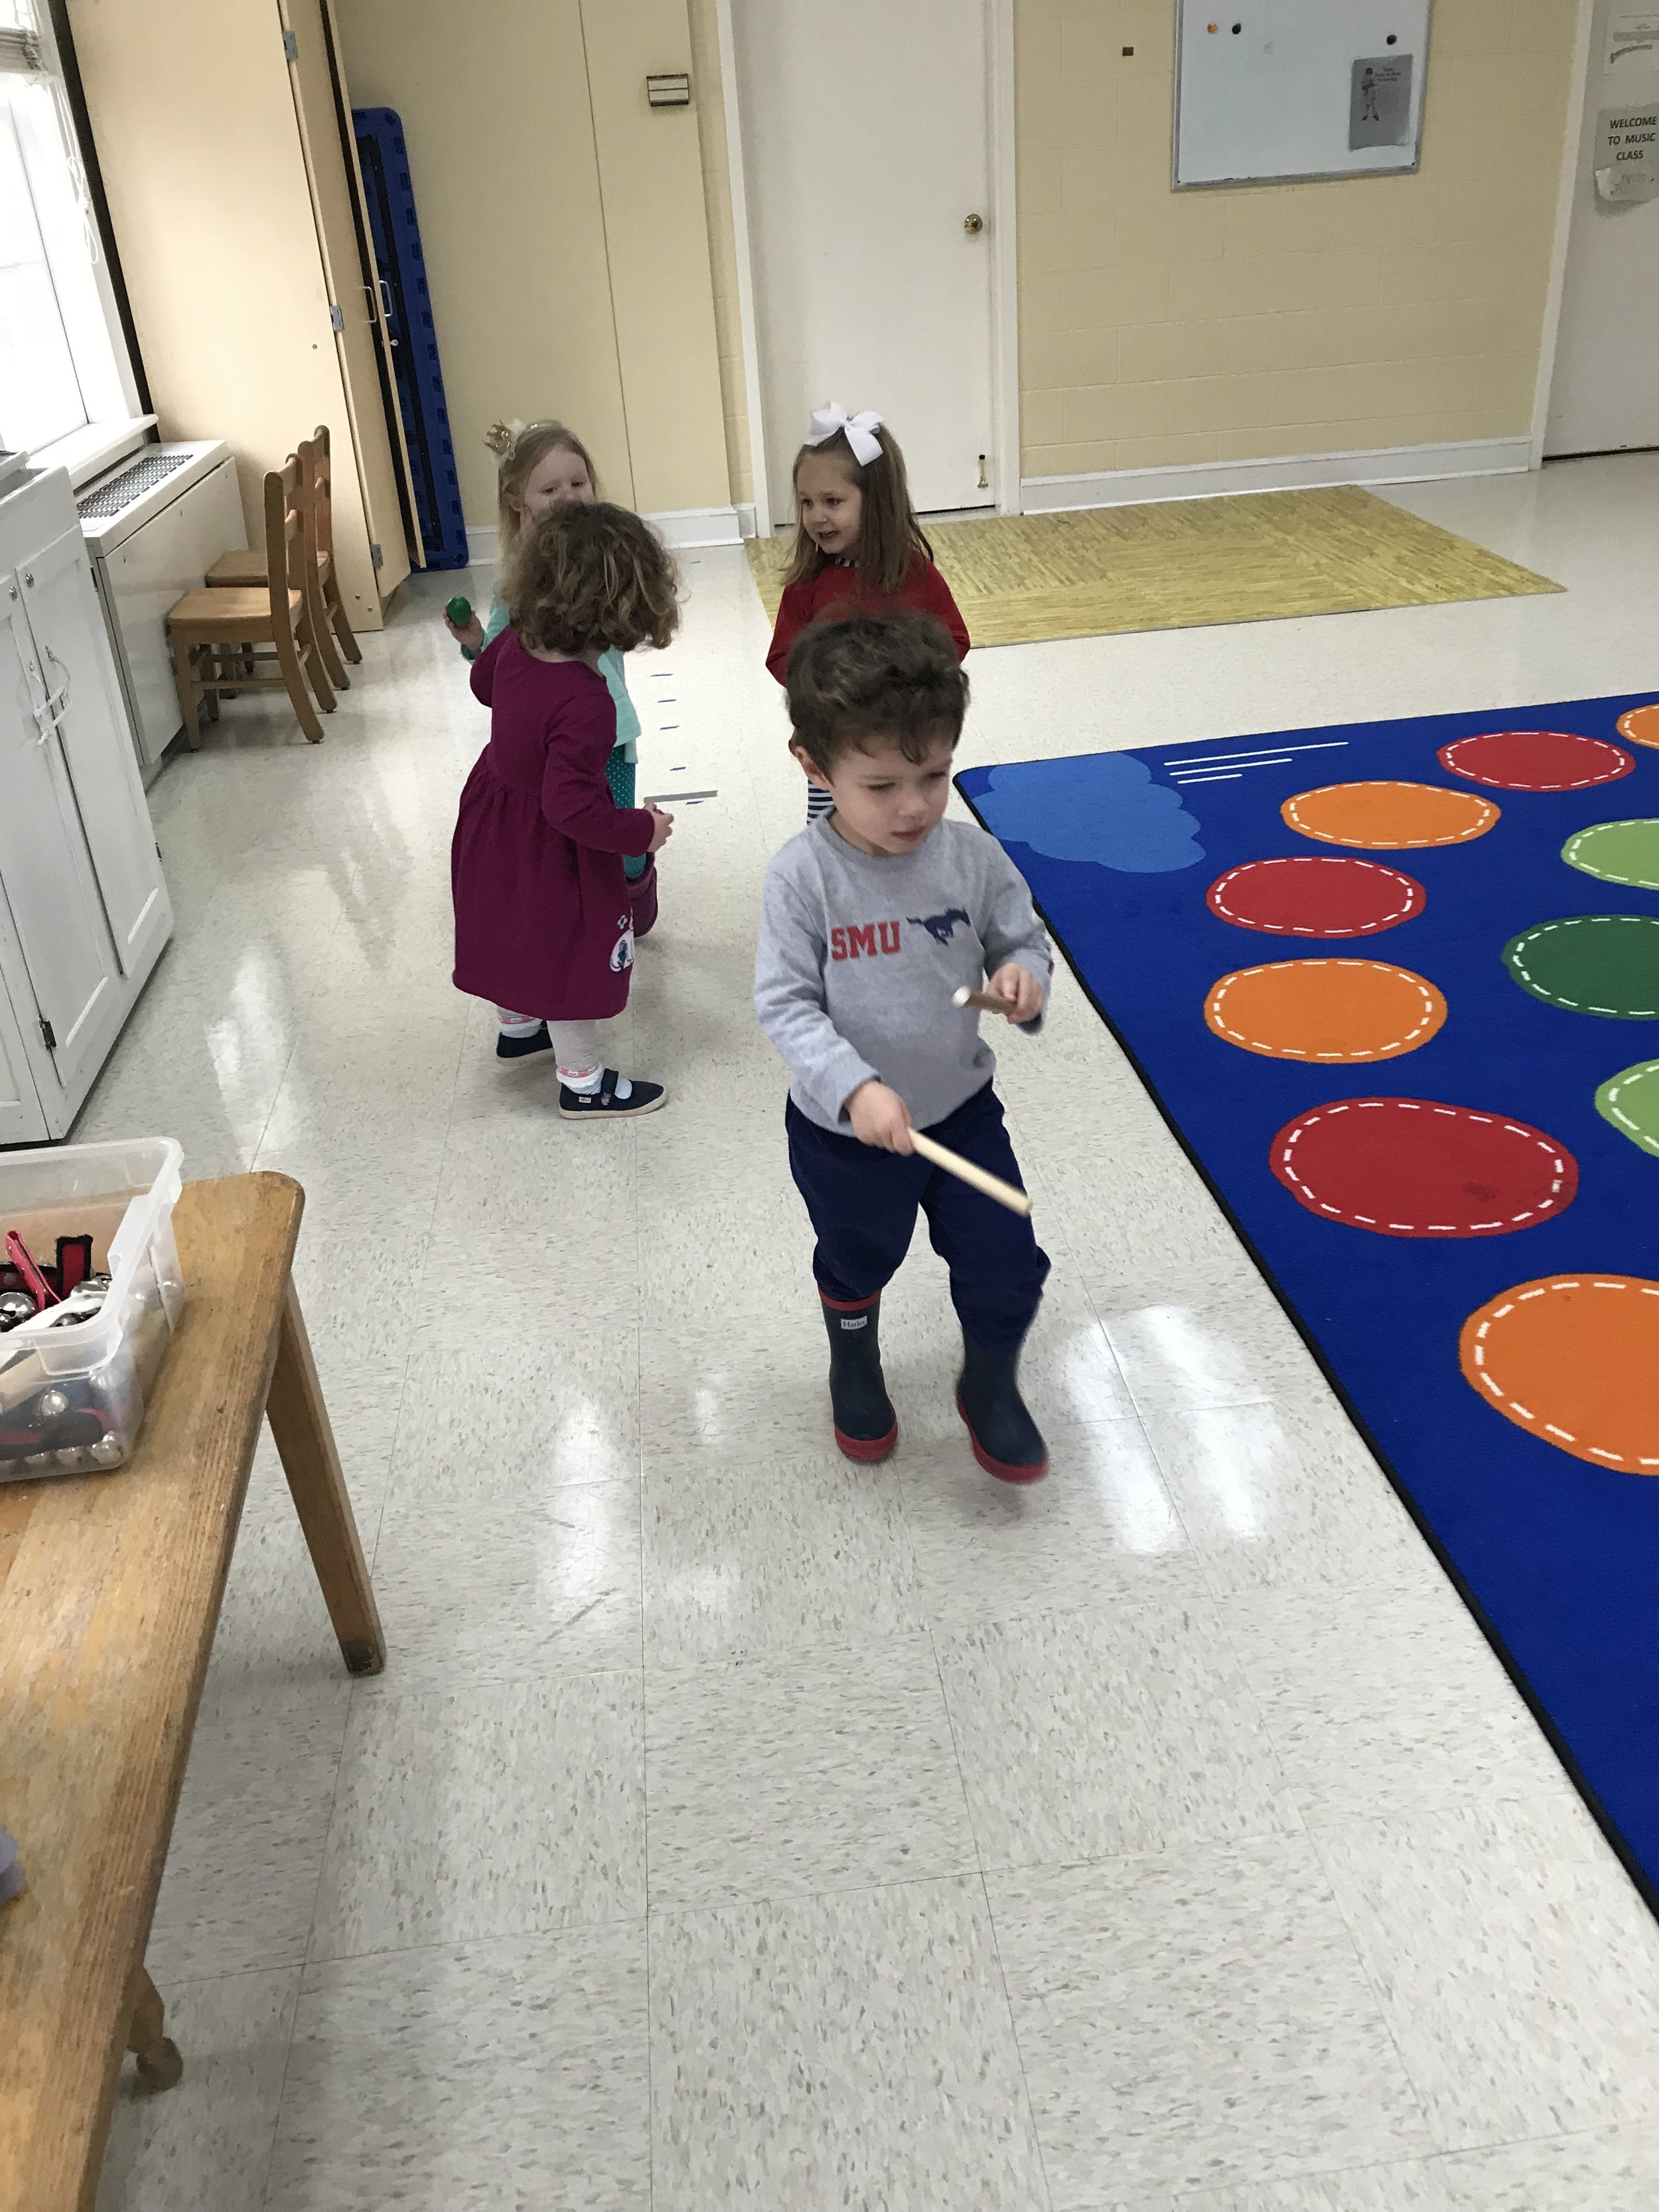 Lots of fun marching like penguins in music class.